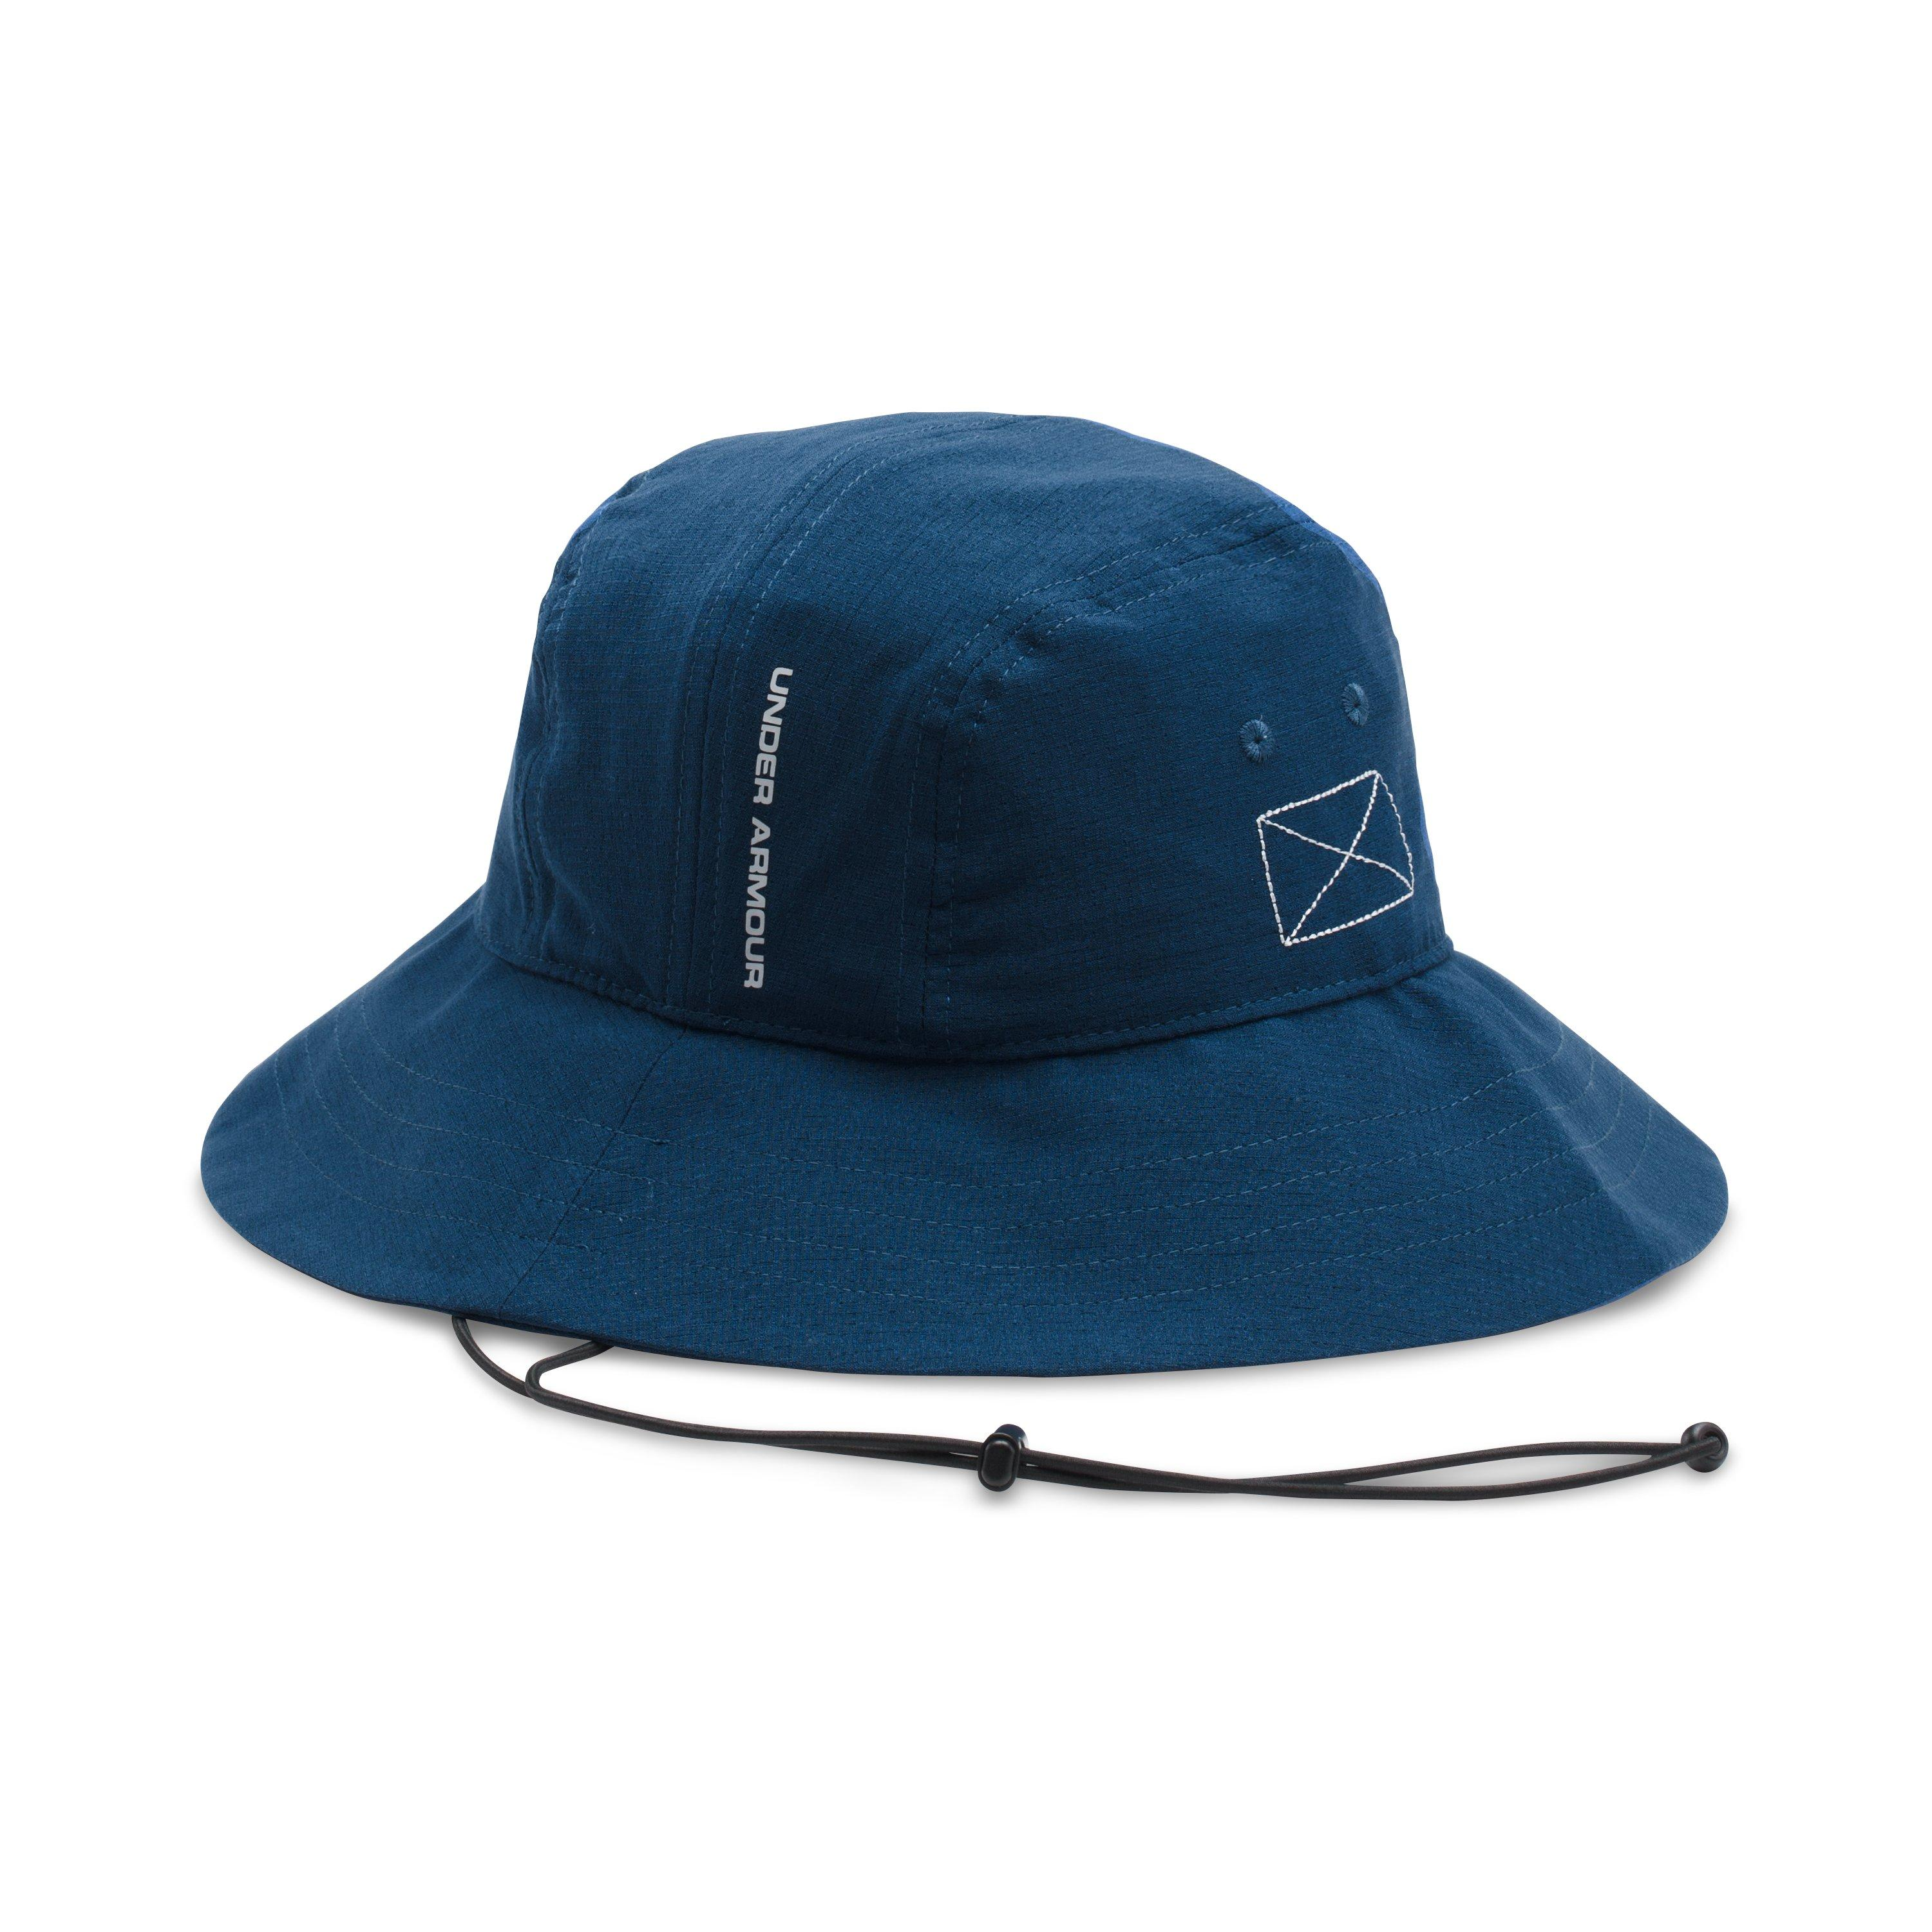 ba62dd14e1f get under armour adjustable chino cap 465d6 ee2e1  buy lyst under armour  mens ua armourventtm bucket hat in blue for men 3cac9 21924